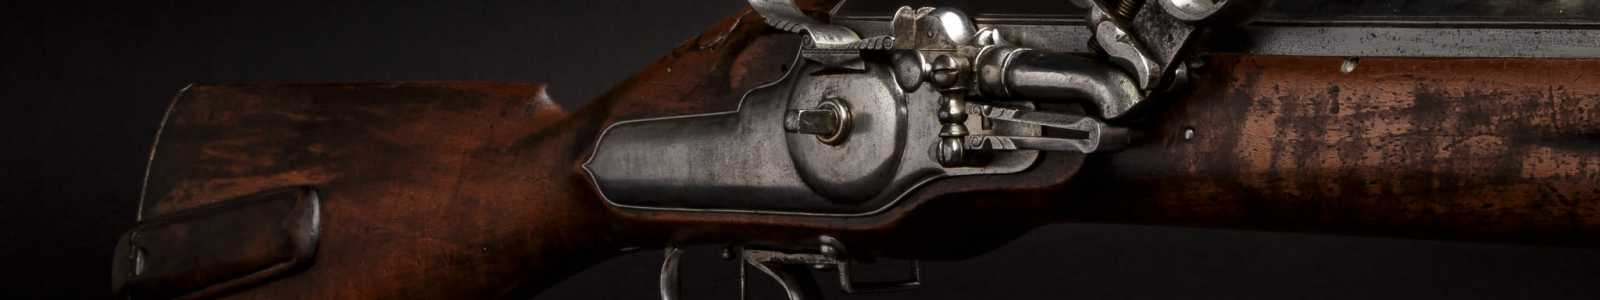 O88: Firearms from five centuries